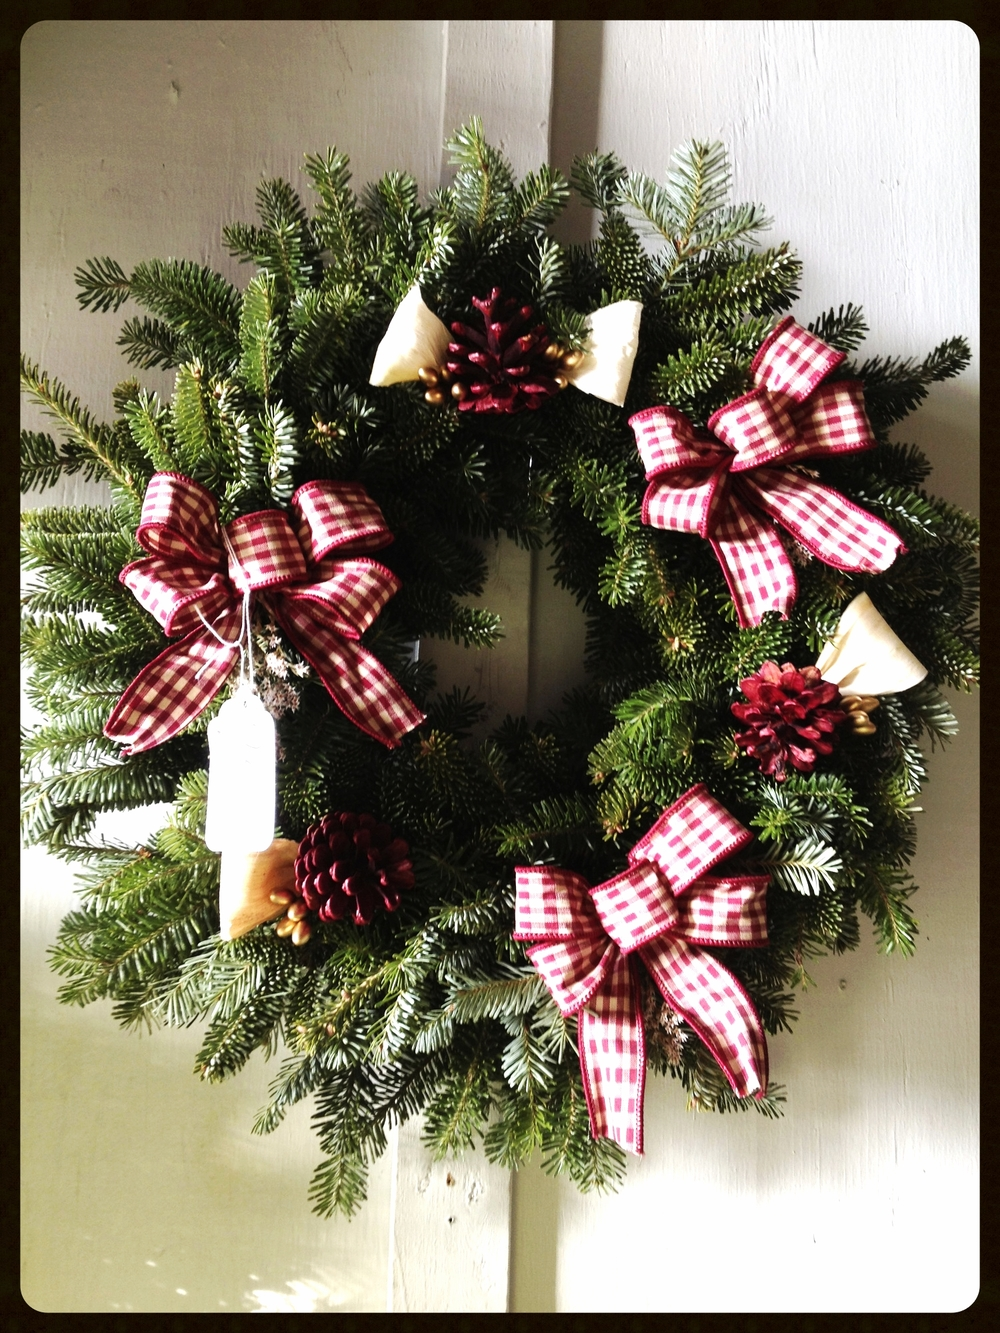 We Have A Large Variety Of Wreaths, Swags (Both Door And Window) And Tree Stands.